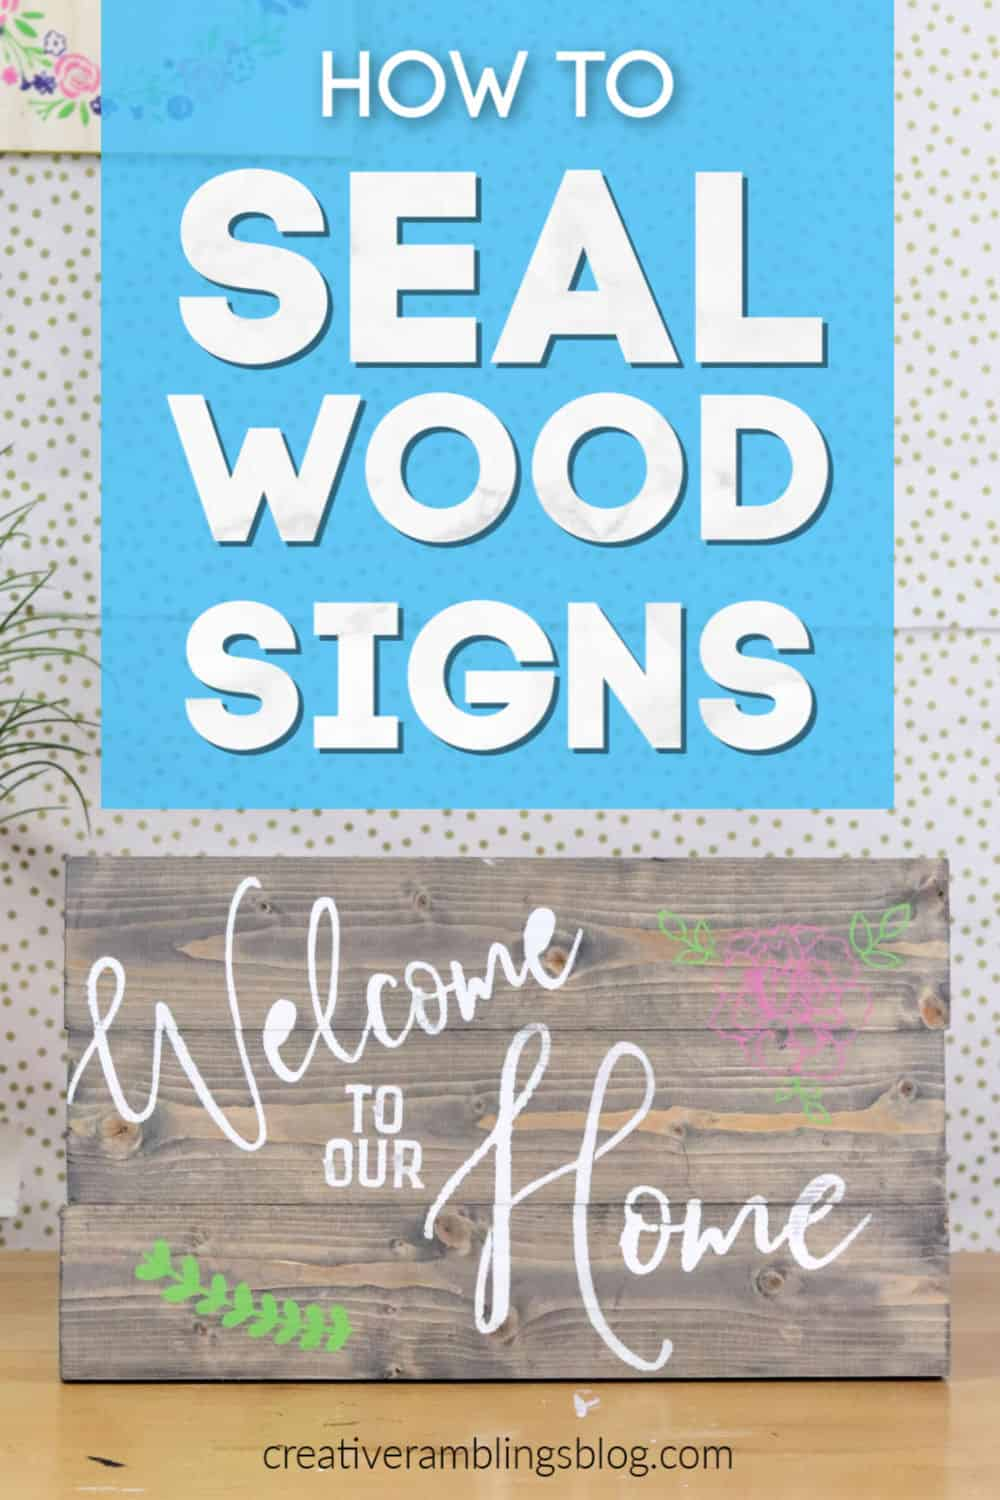 How to seal wood signs